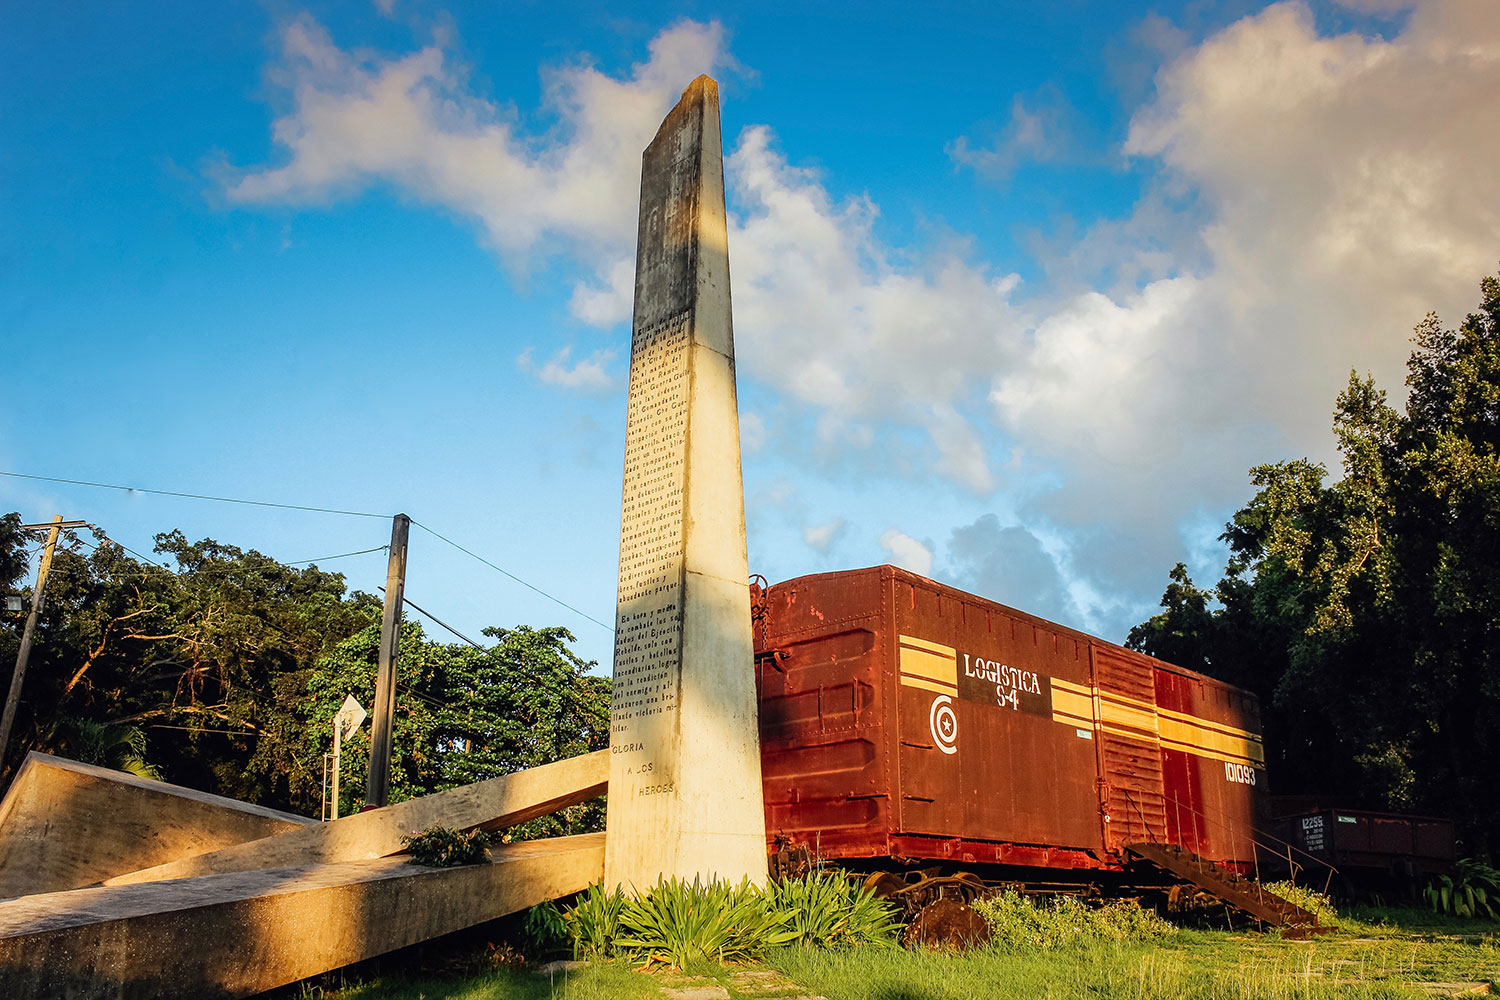 The Tren Blindado. Designed by José Delarra. Santa Clara, Cuba.